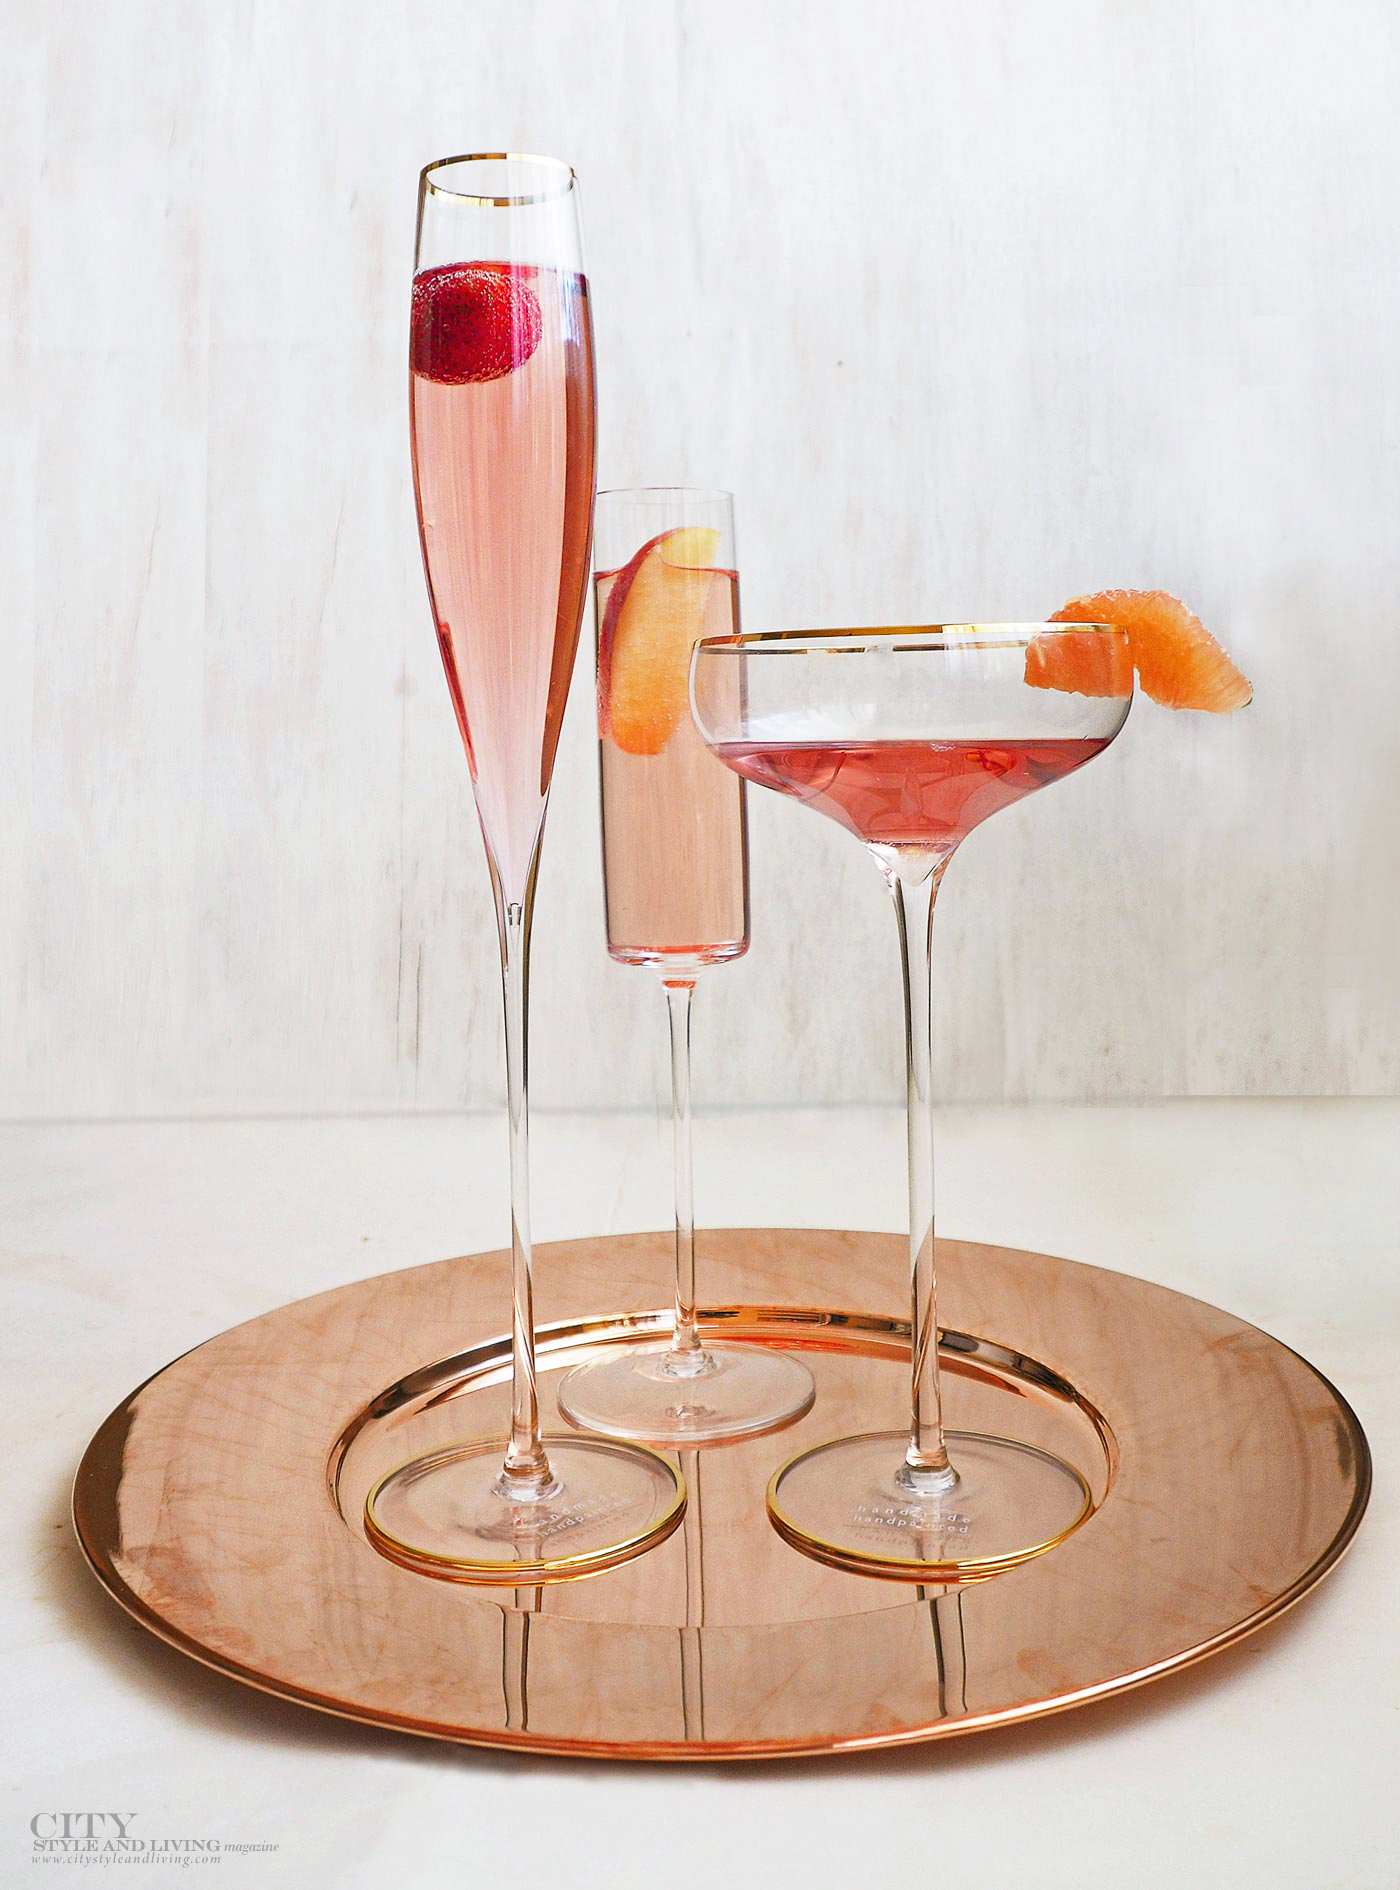 City Style and Living Magazine Rose glasses lsa international